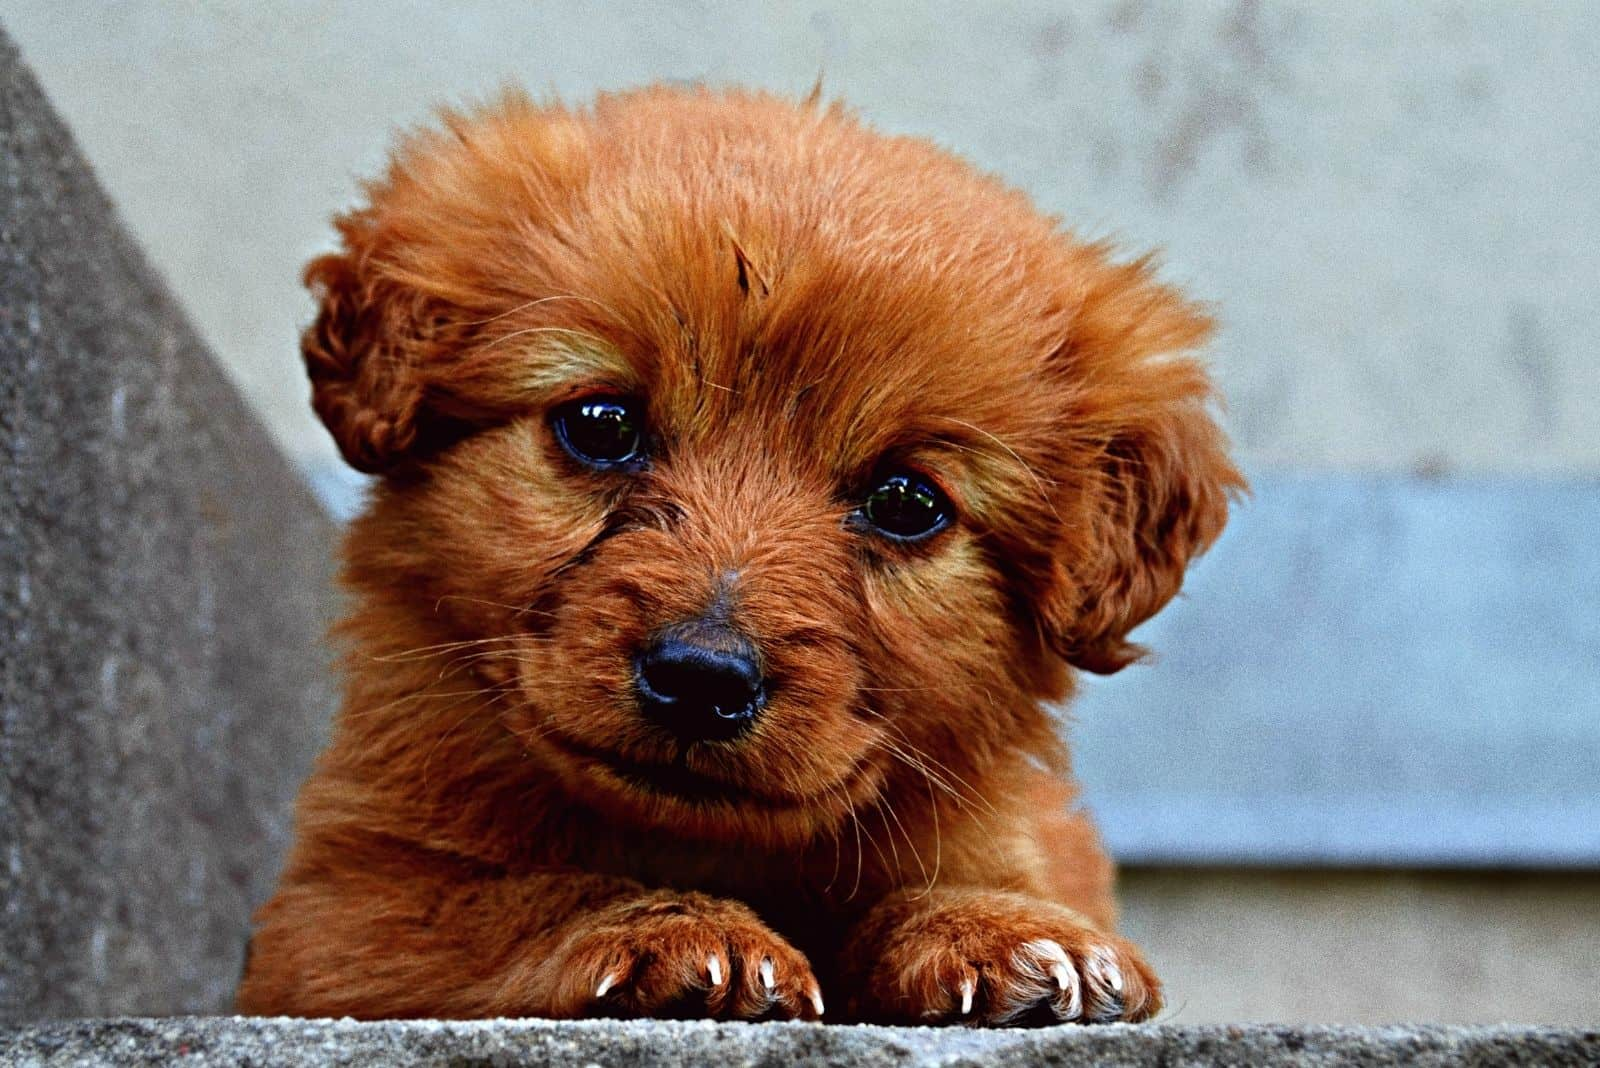 cutel little puppy brown color climbing up and look at the camera